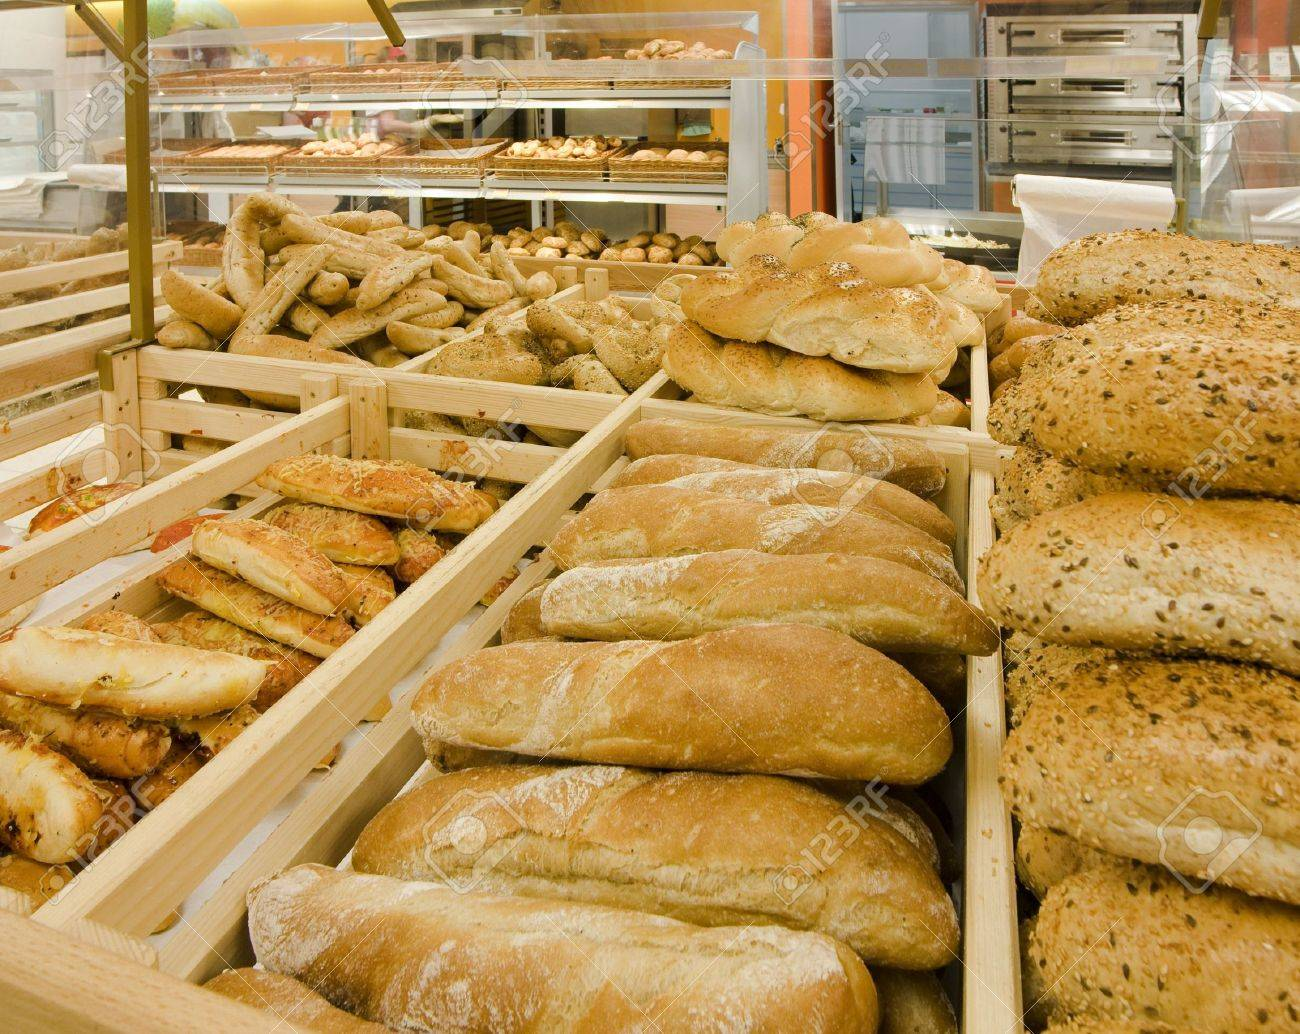 Loaves of bread on shelves in a store Stock Photo - 4280425